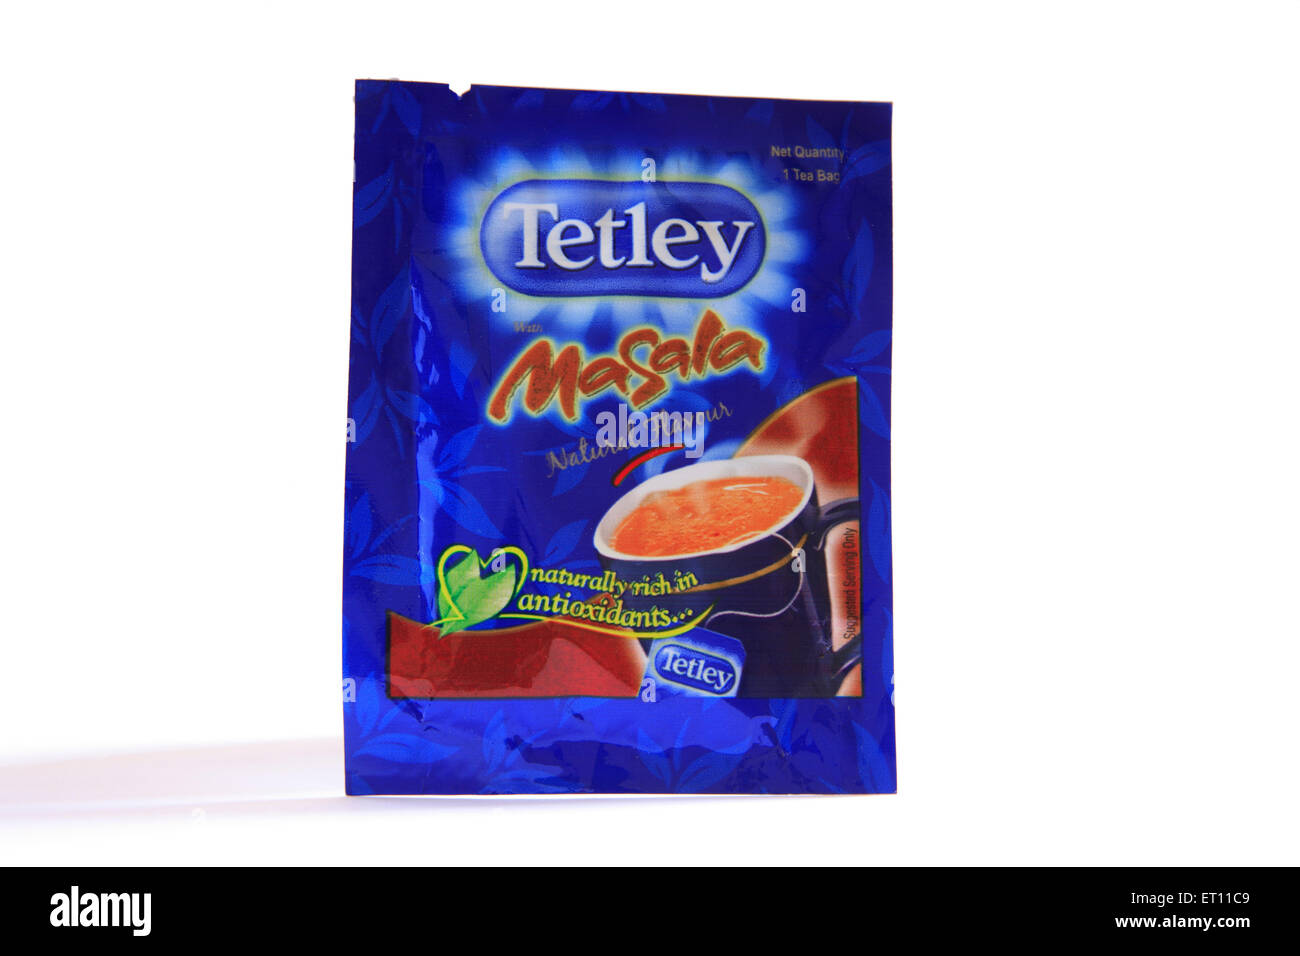 Tetley tea masala in blue packet on white background - Stock Image